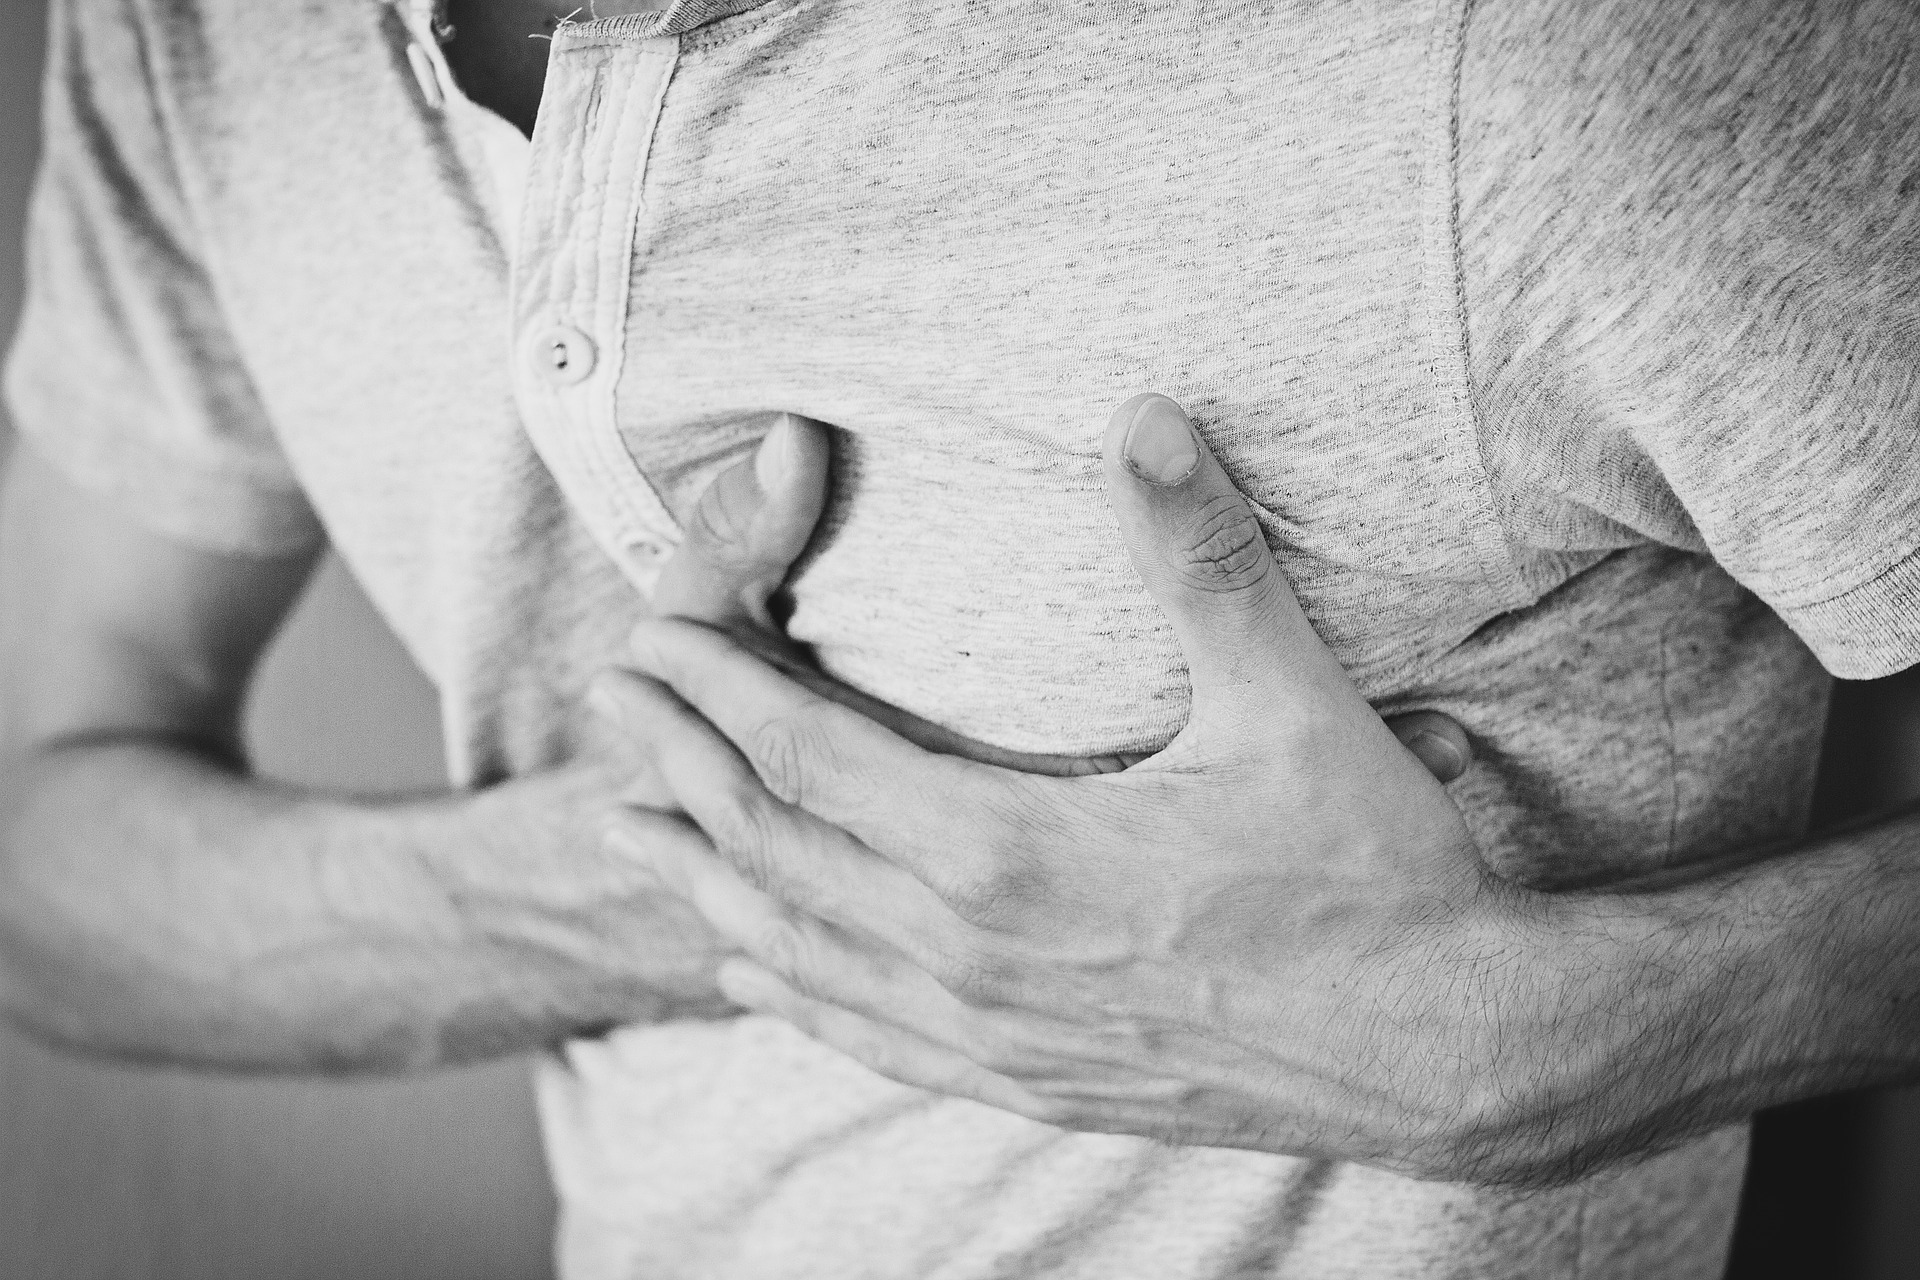 A Popular Painkiller Ingredient Increases Risks Of Heart Attack By 50%